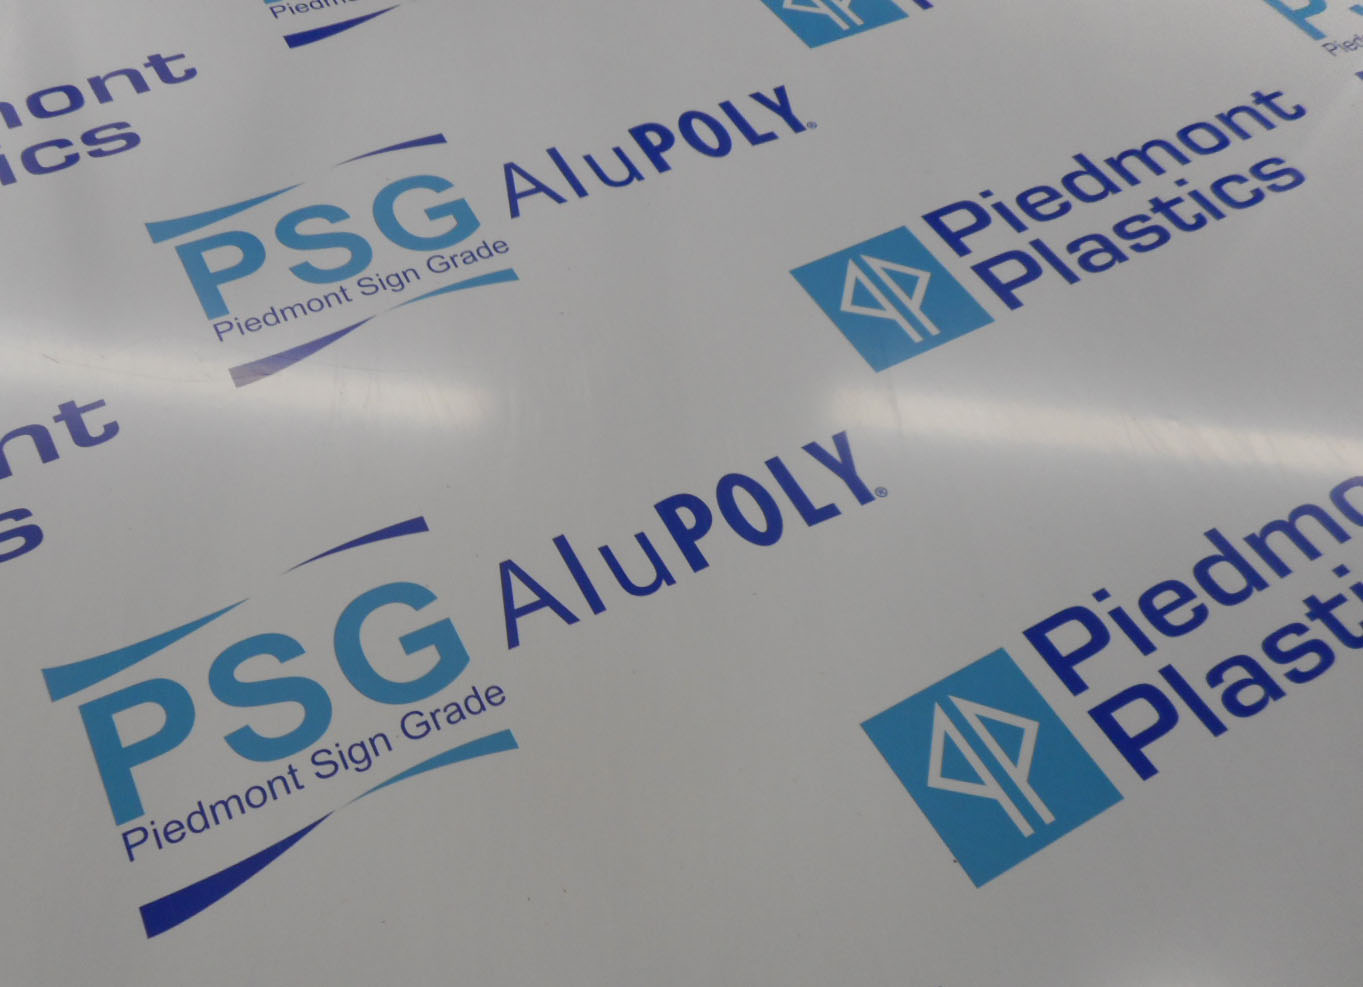 Piedmont Sign-Grade AluPoly